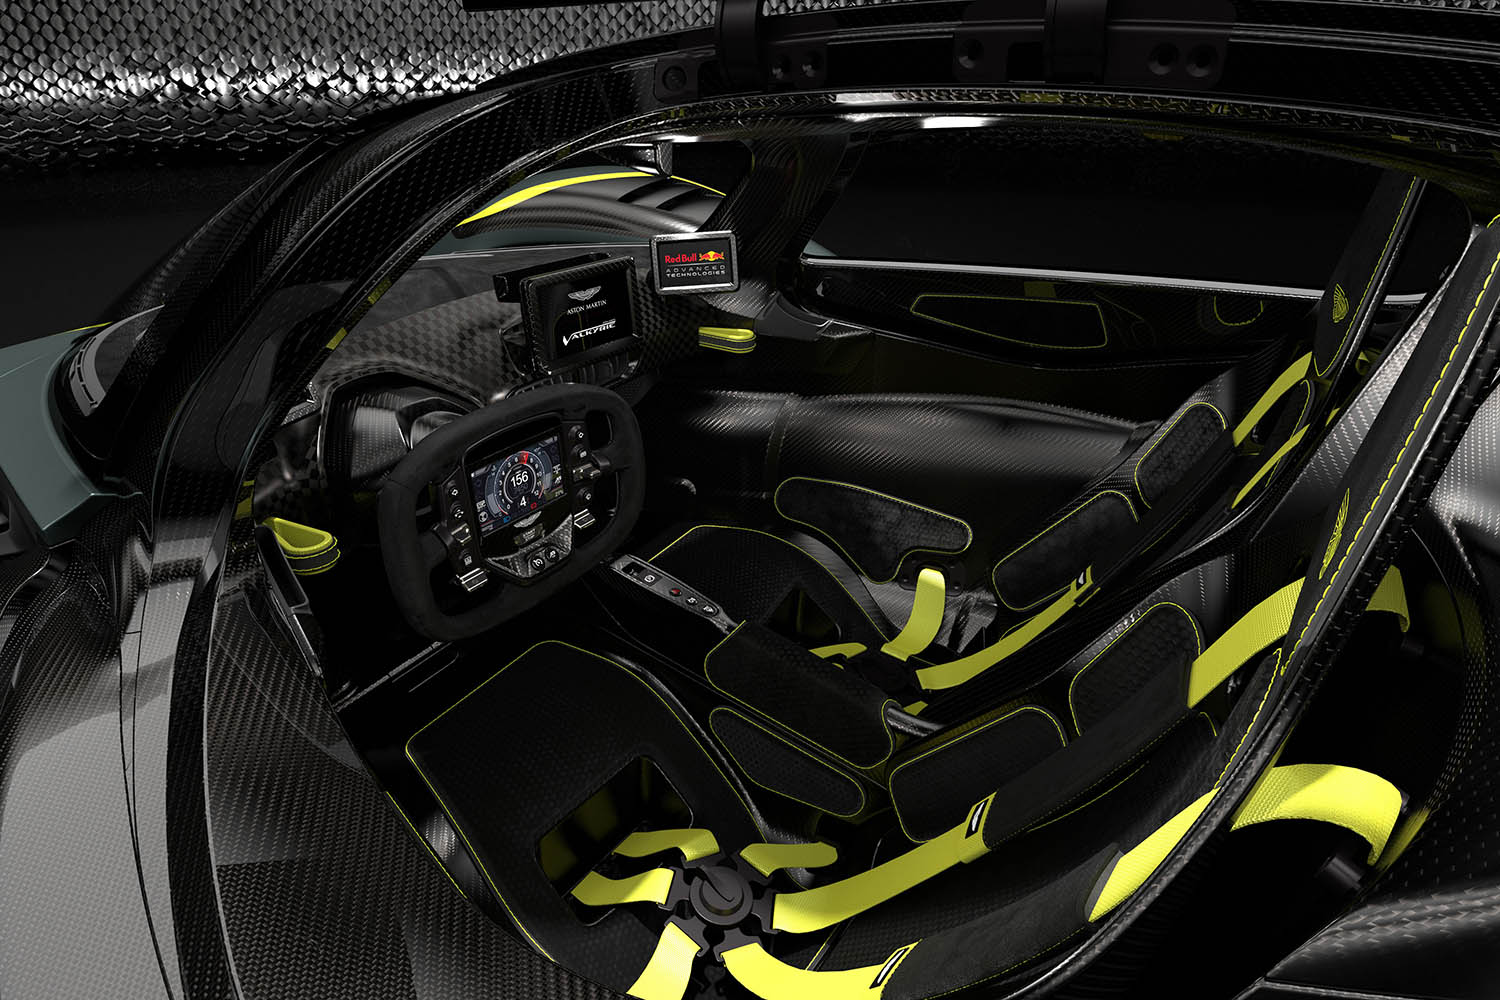 Aston Martin Valkyrie with AMR Track Performance Pack - Stirling Green and Lime livery (5).jpg